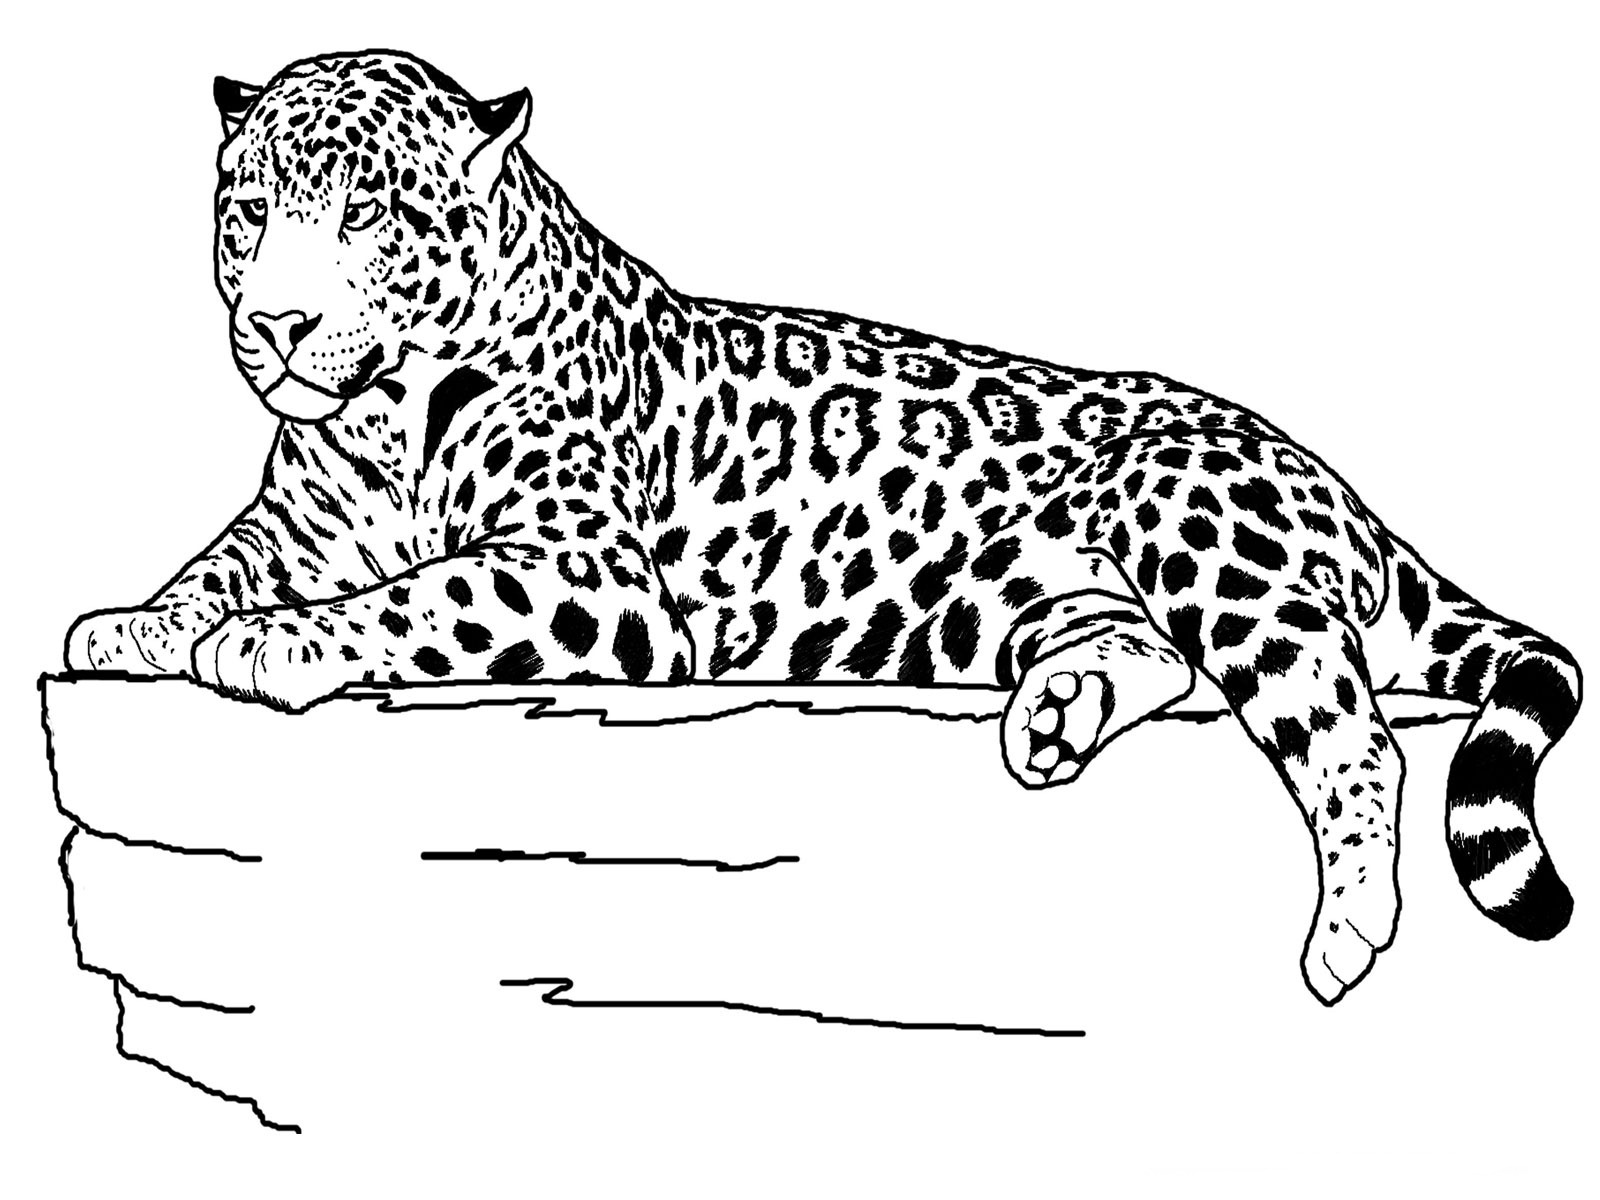 Coloring Pages Animals Realistic : Jaguar animal coloring pages realistic